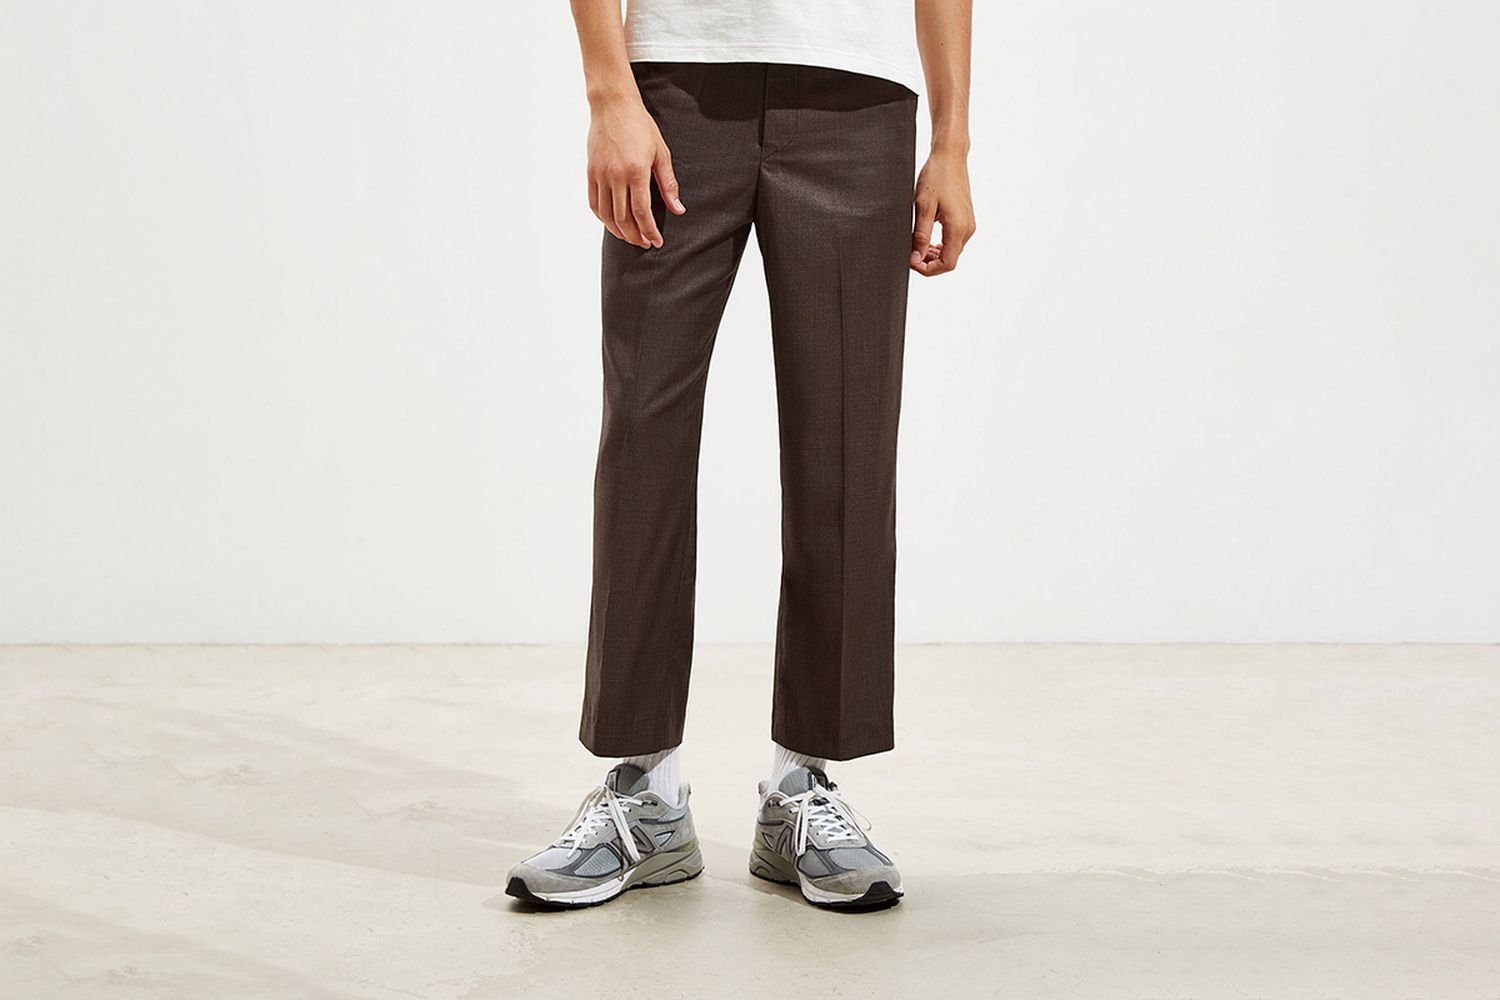 Tailored Relaxed Suit Pant